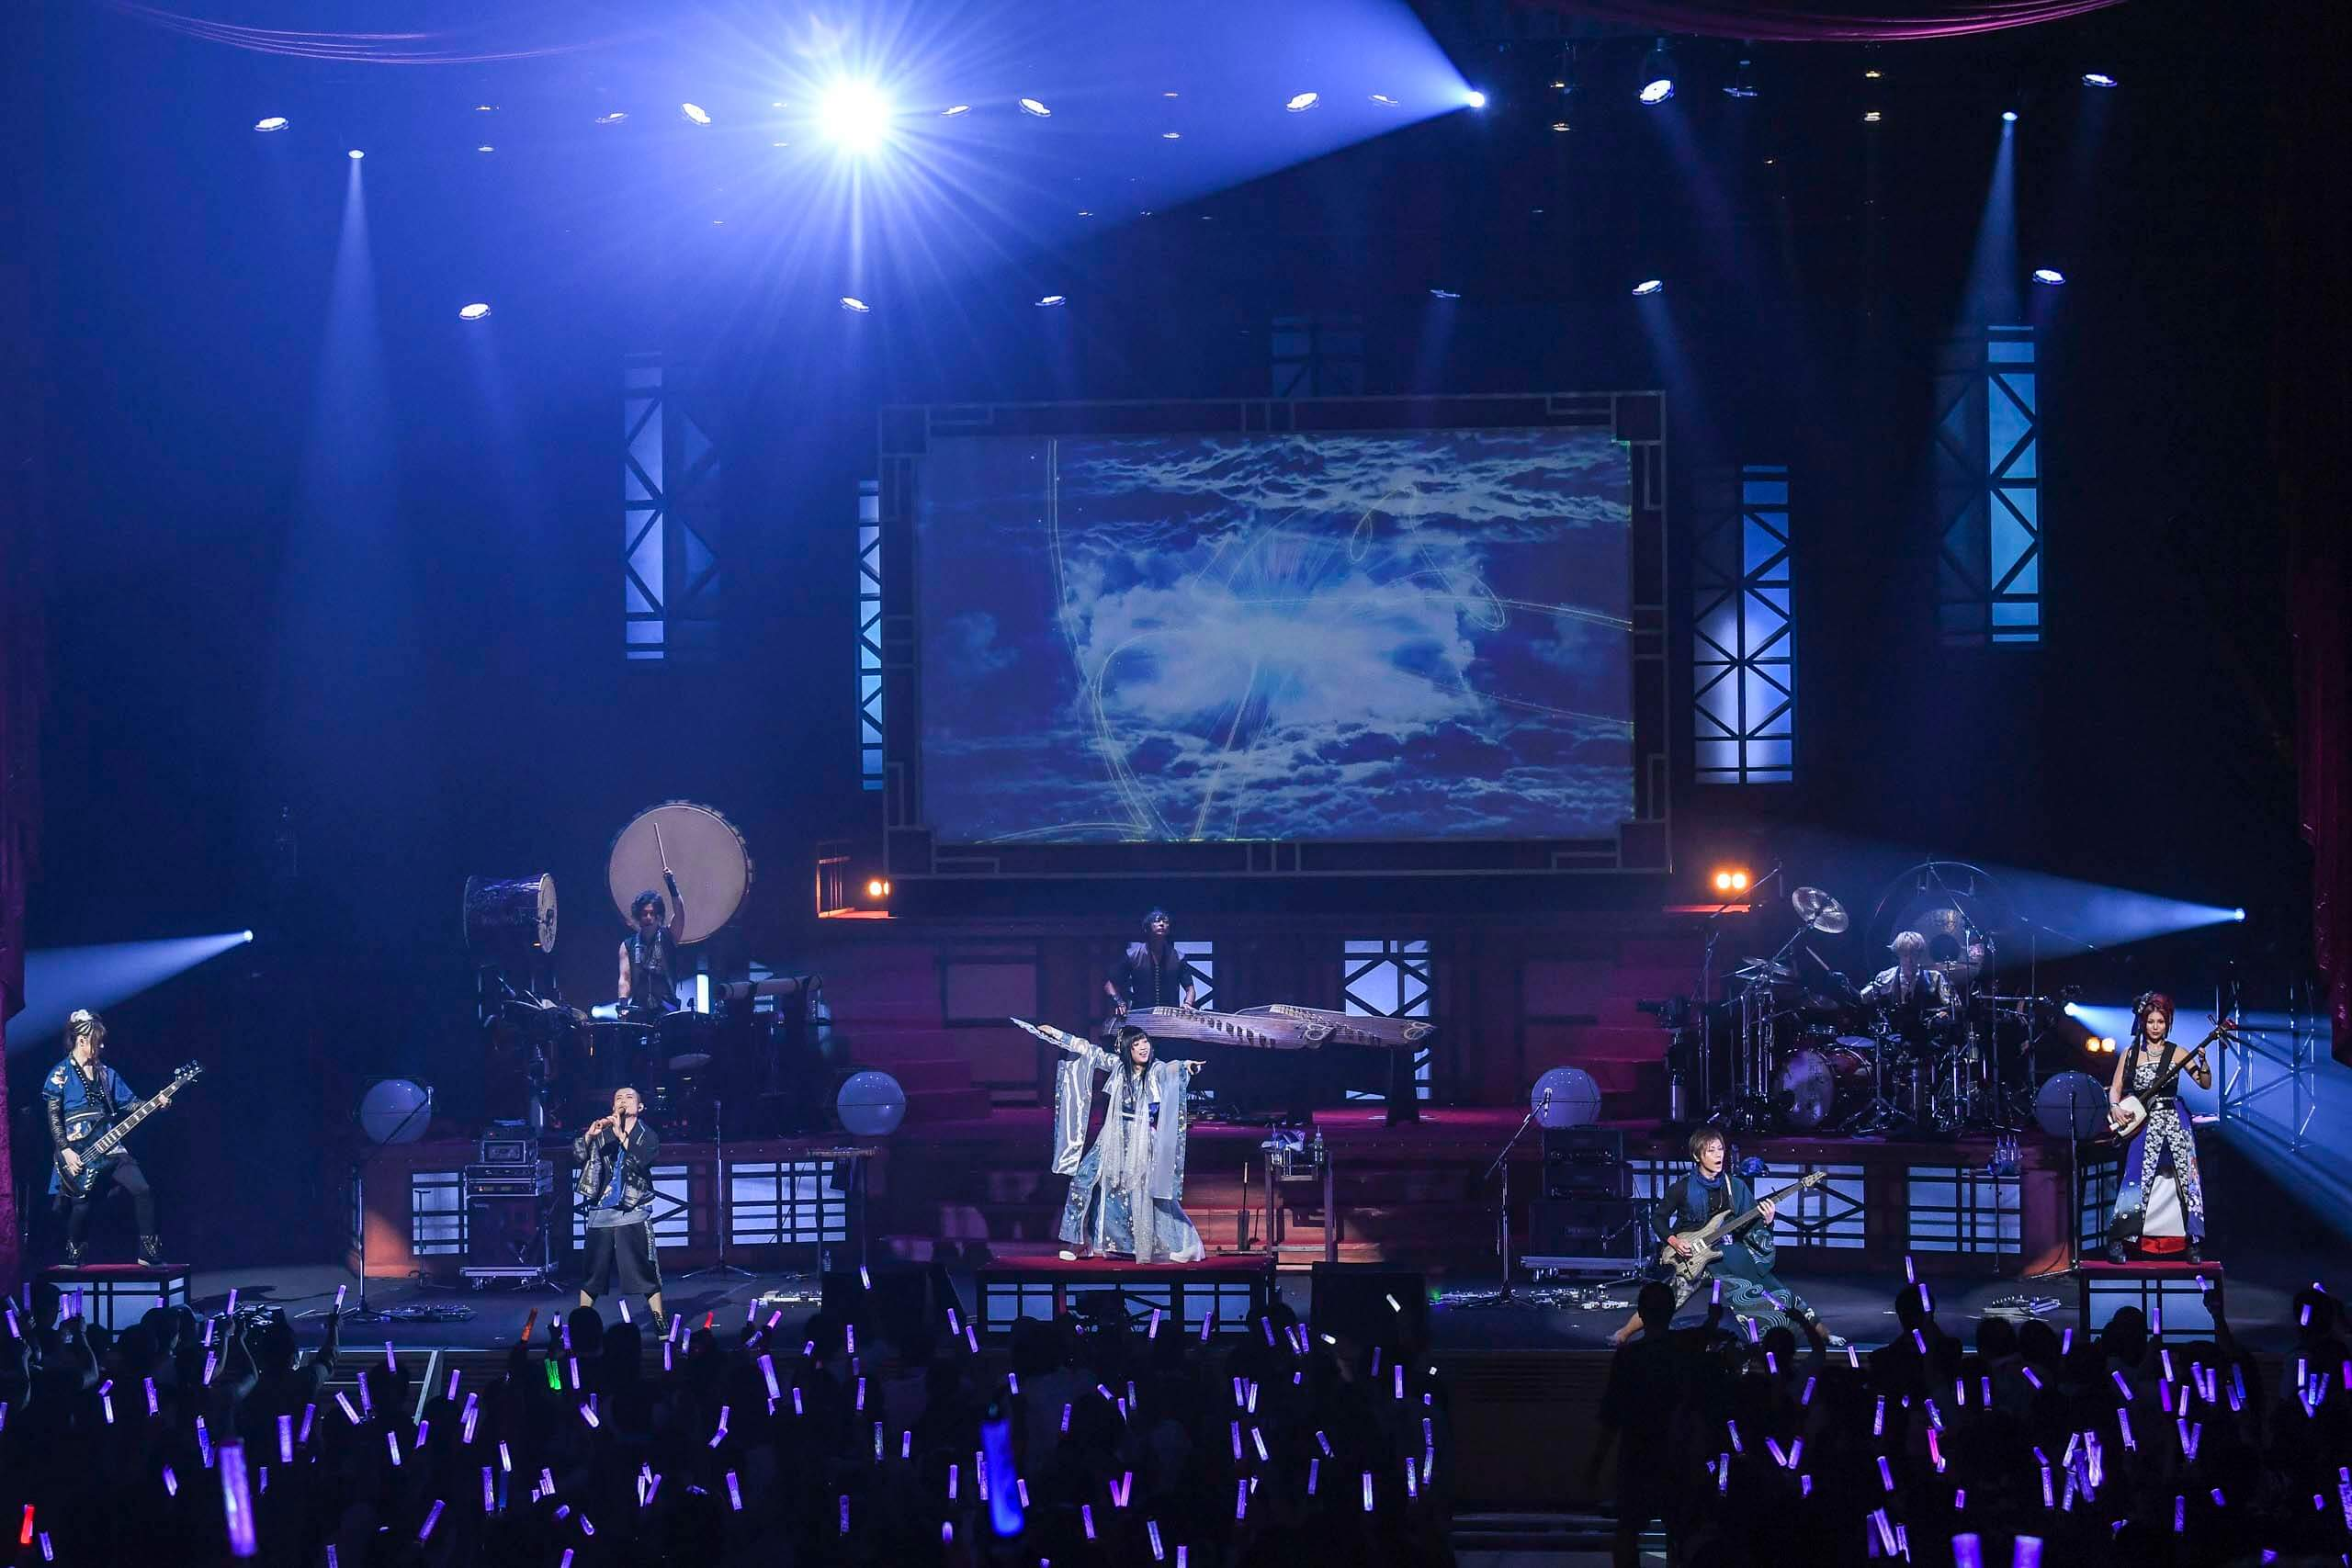 Concert Review: Wagakki Band Announce 2019 New Year's Concert on